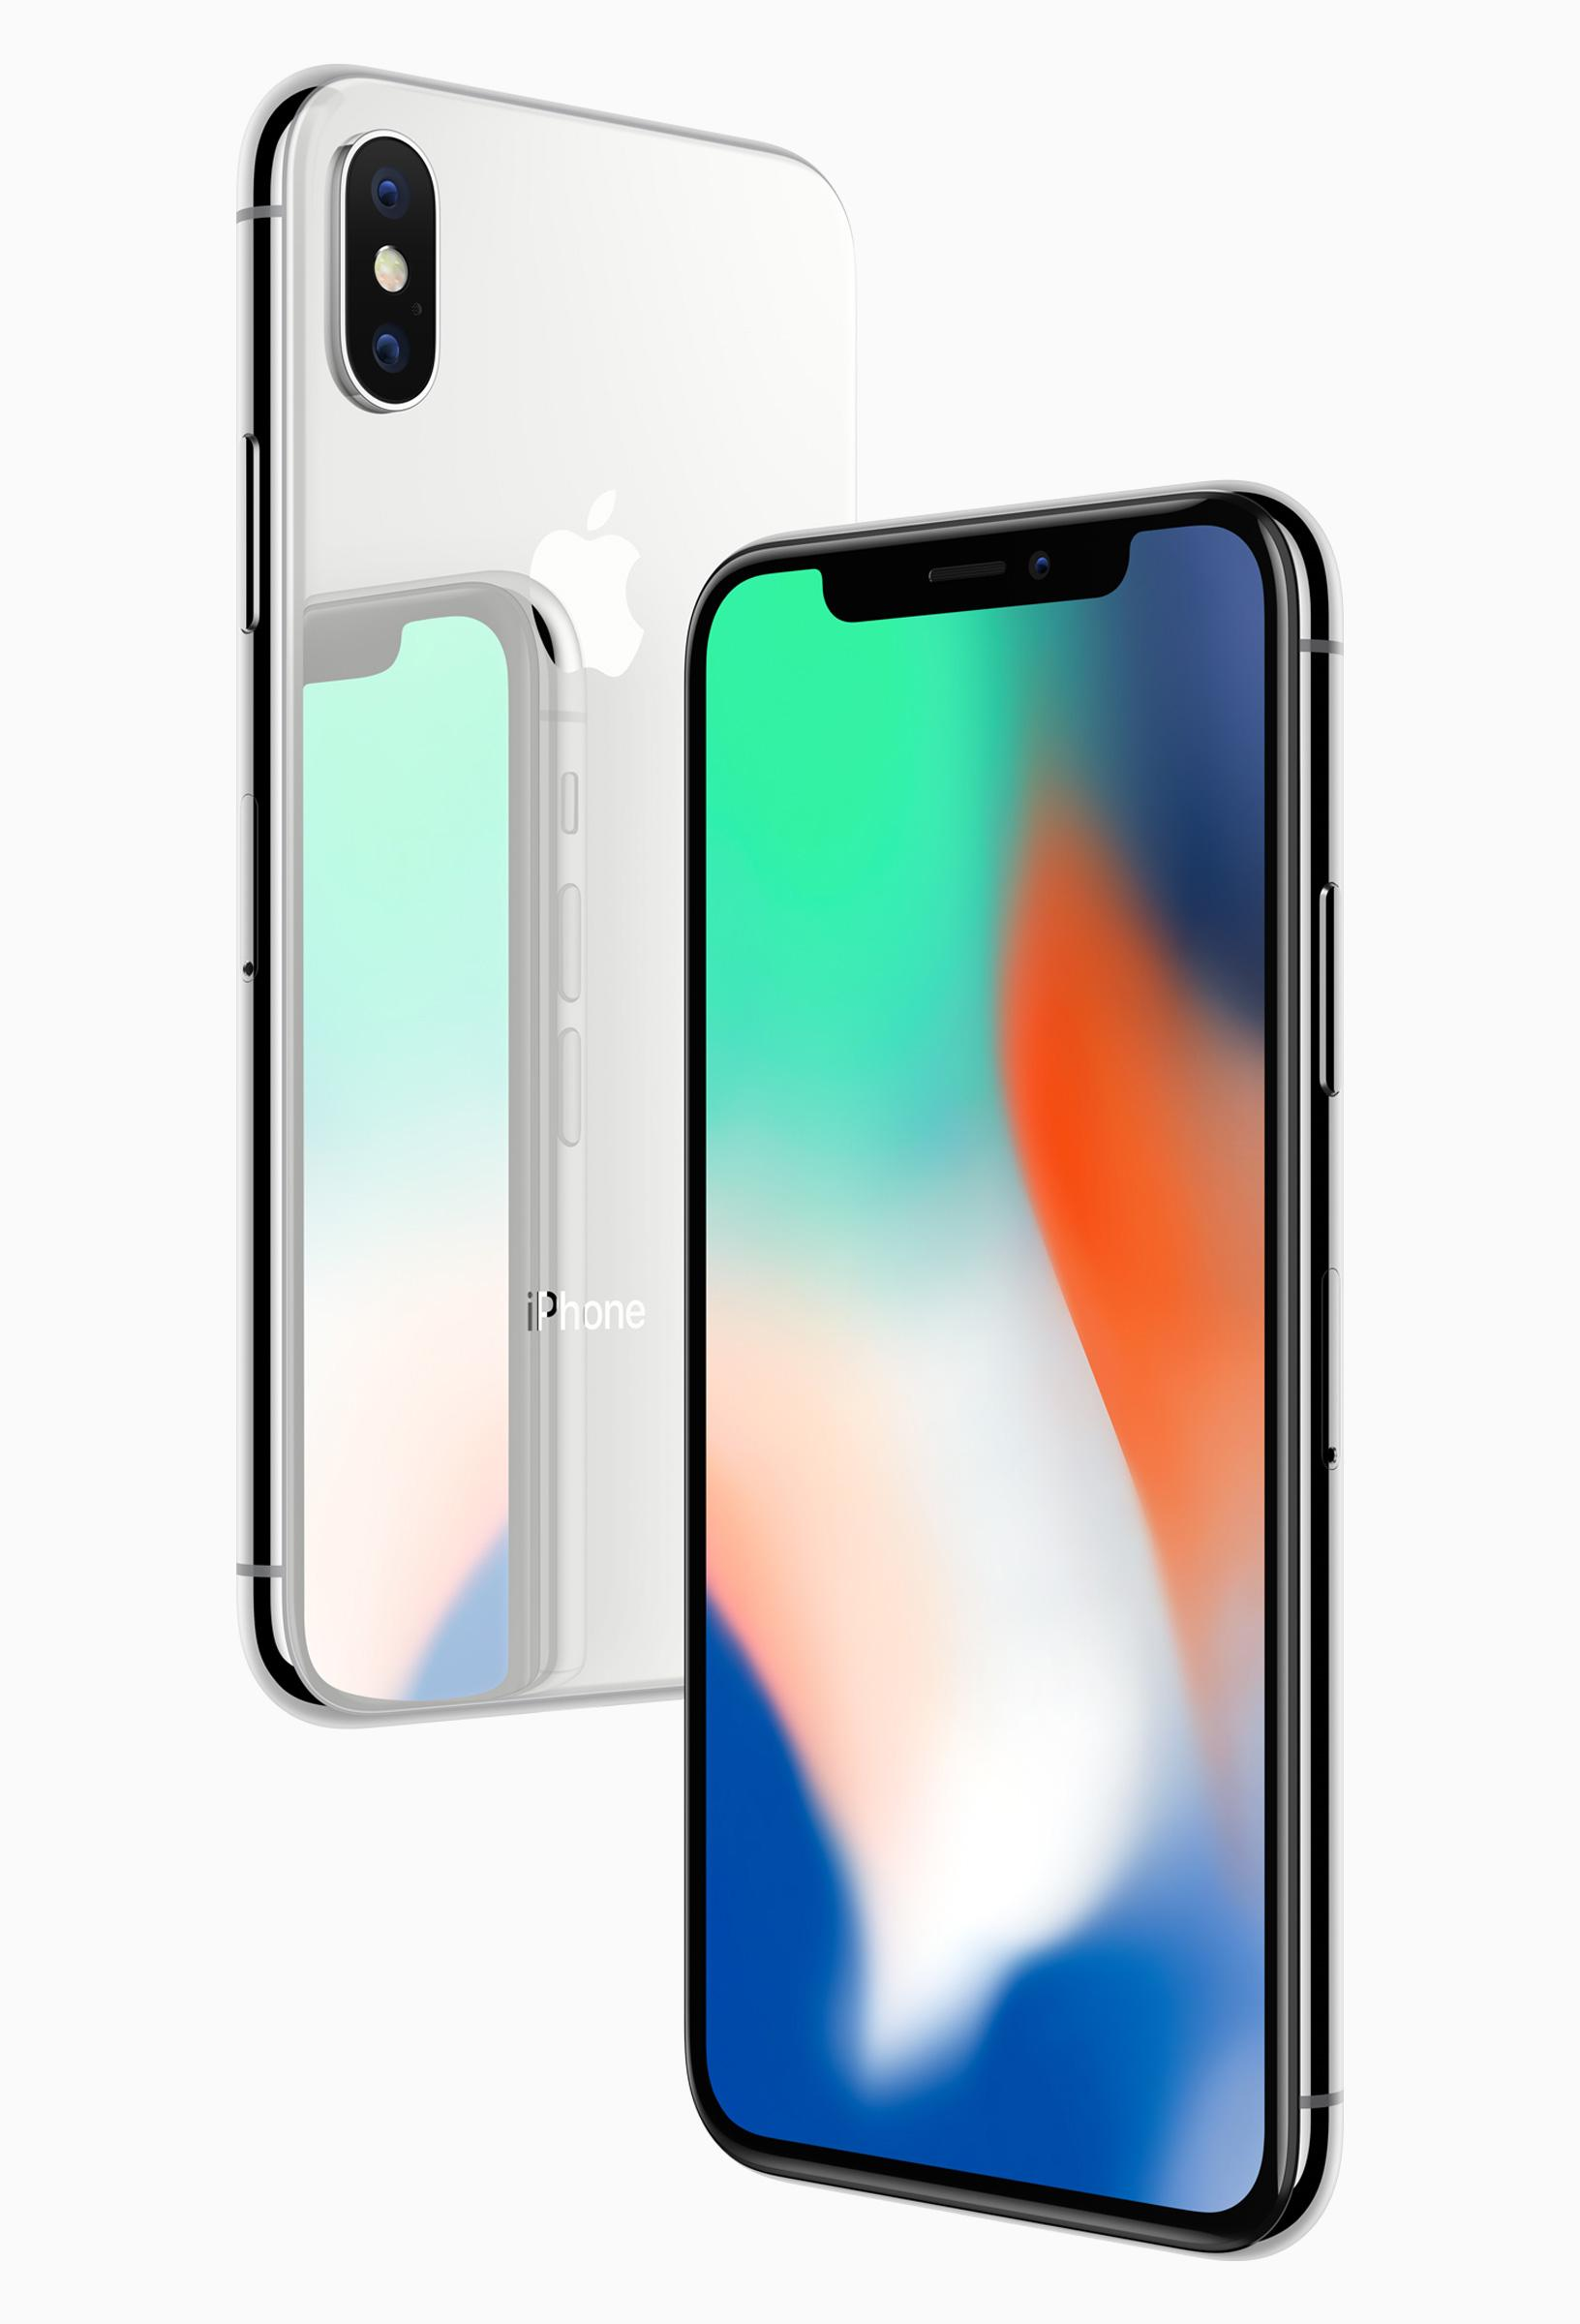 iphone X apple reveal